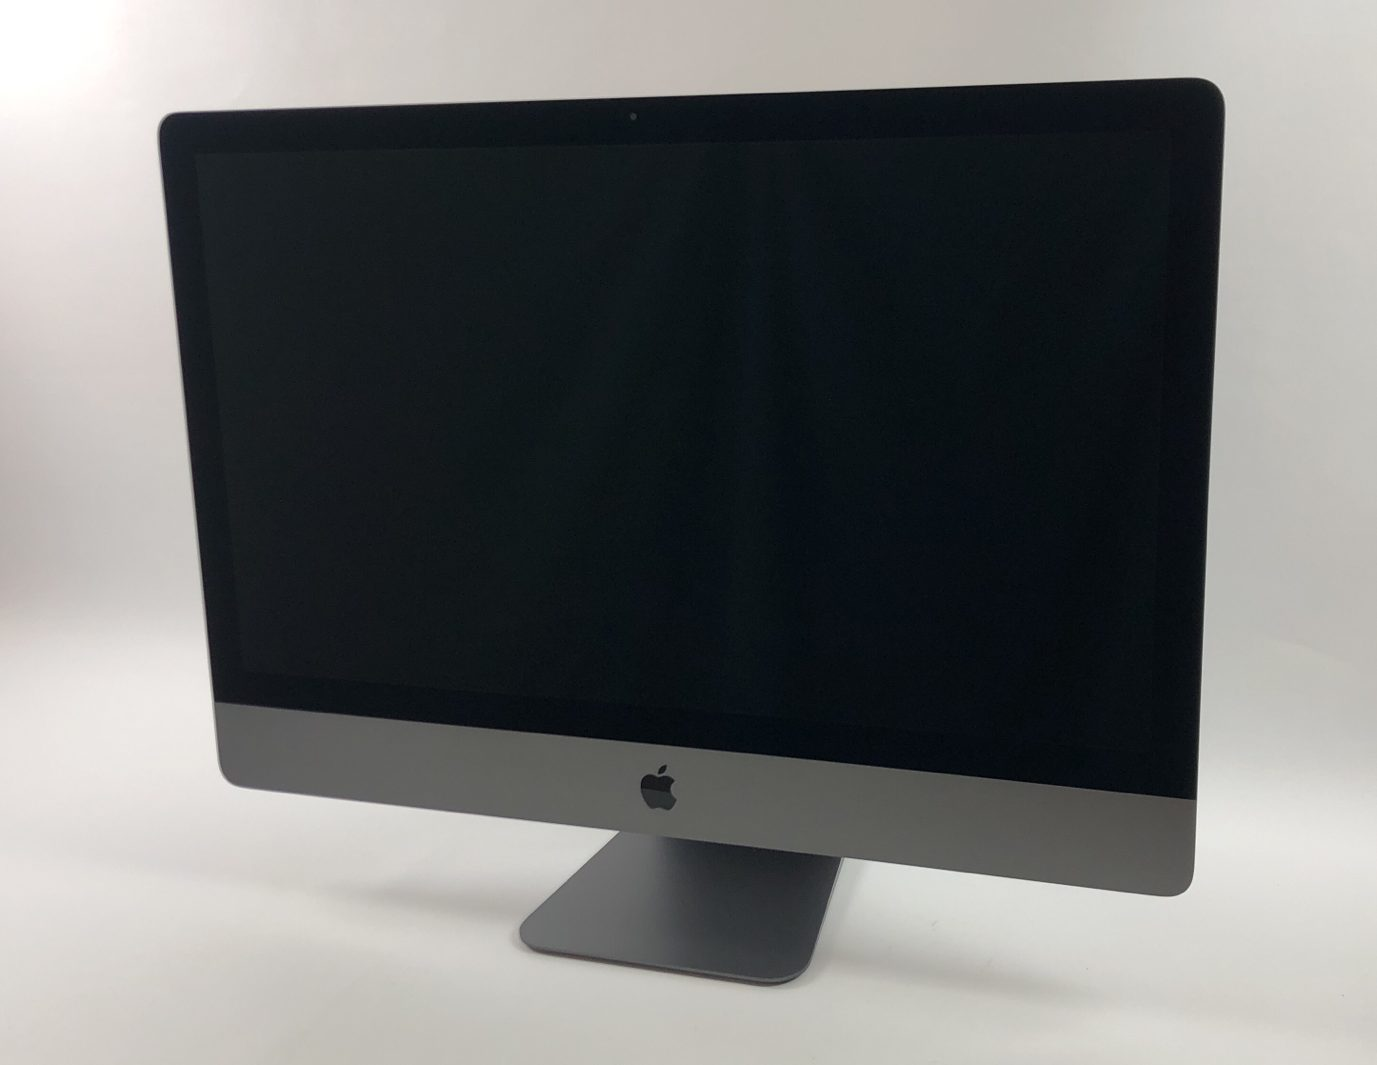 iMac Pro 2017 (Intel 8-Core Xeon W 3.2 GHz 32 GB RAM 1 TB SSD), Intel 8-Core Xeon W 3.2 GHz, 32 GB RAM, 1 TB SSD, Kuva 1